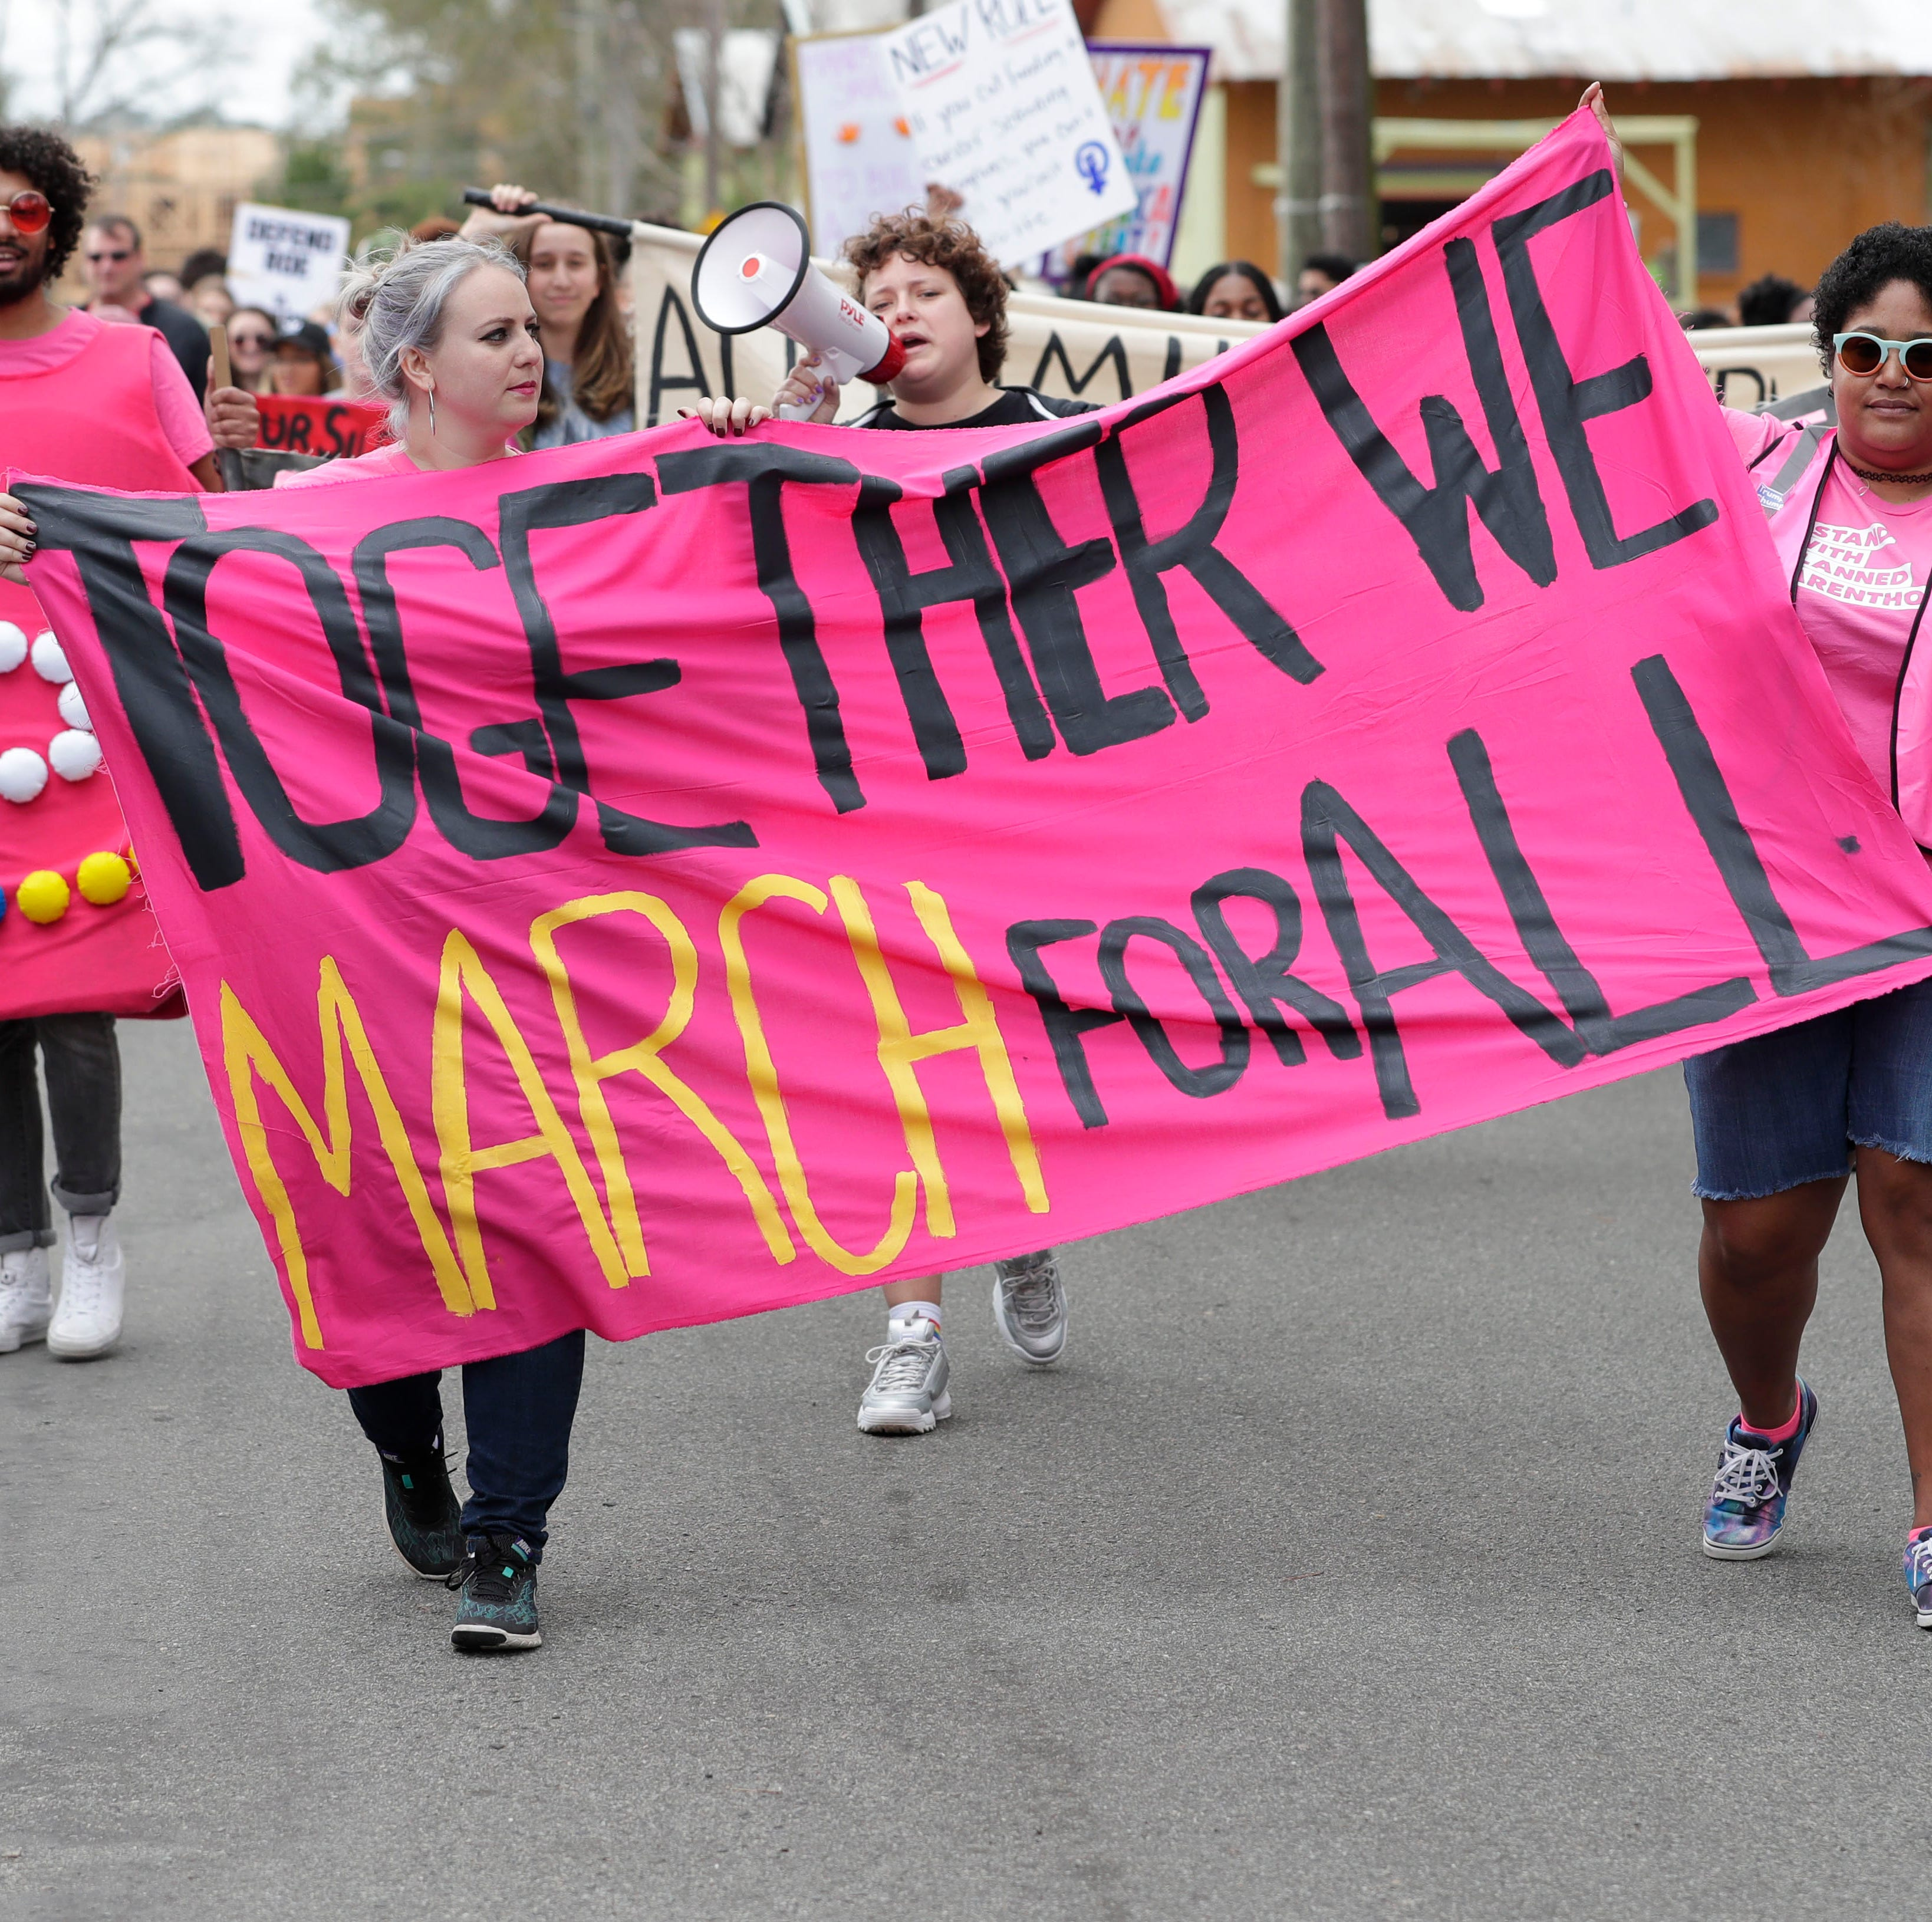 Tallahasseeans push for equality on 3rd anniversary of Women's March